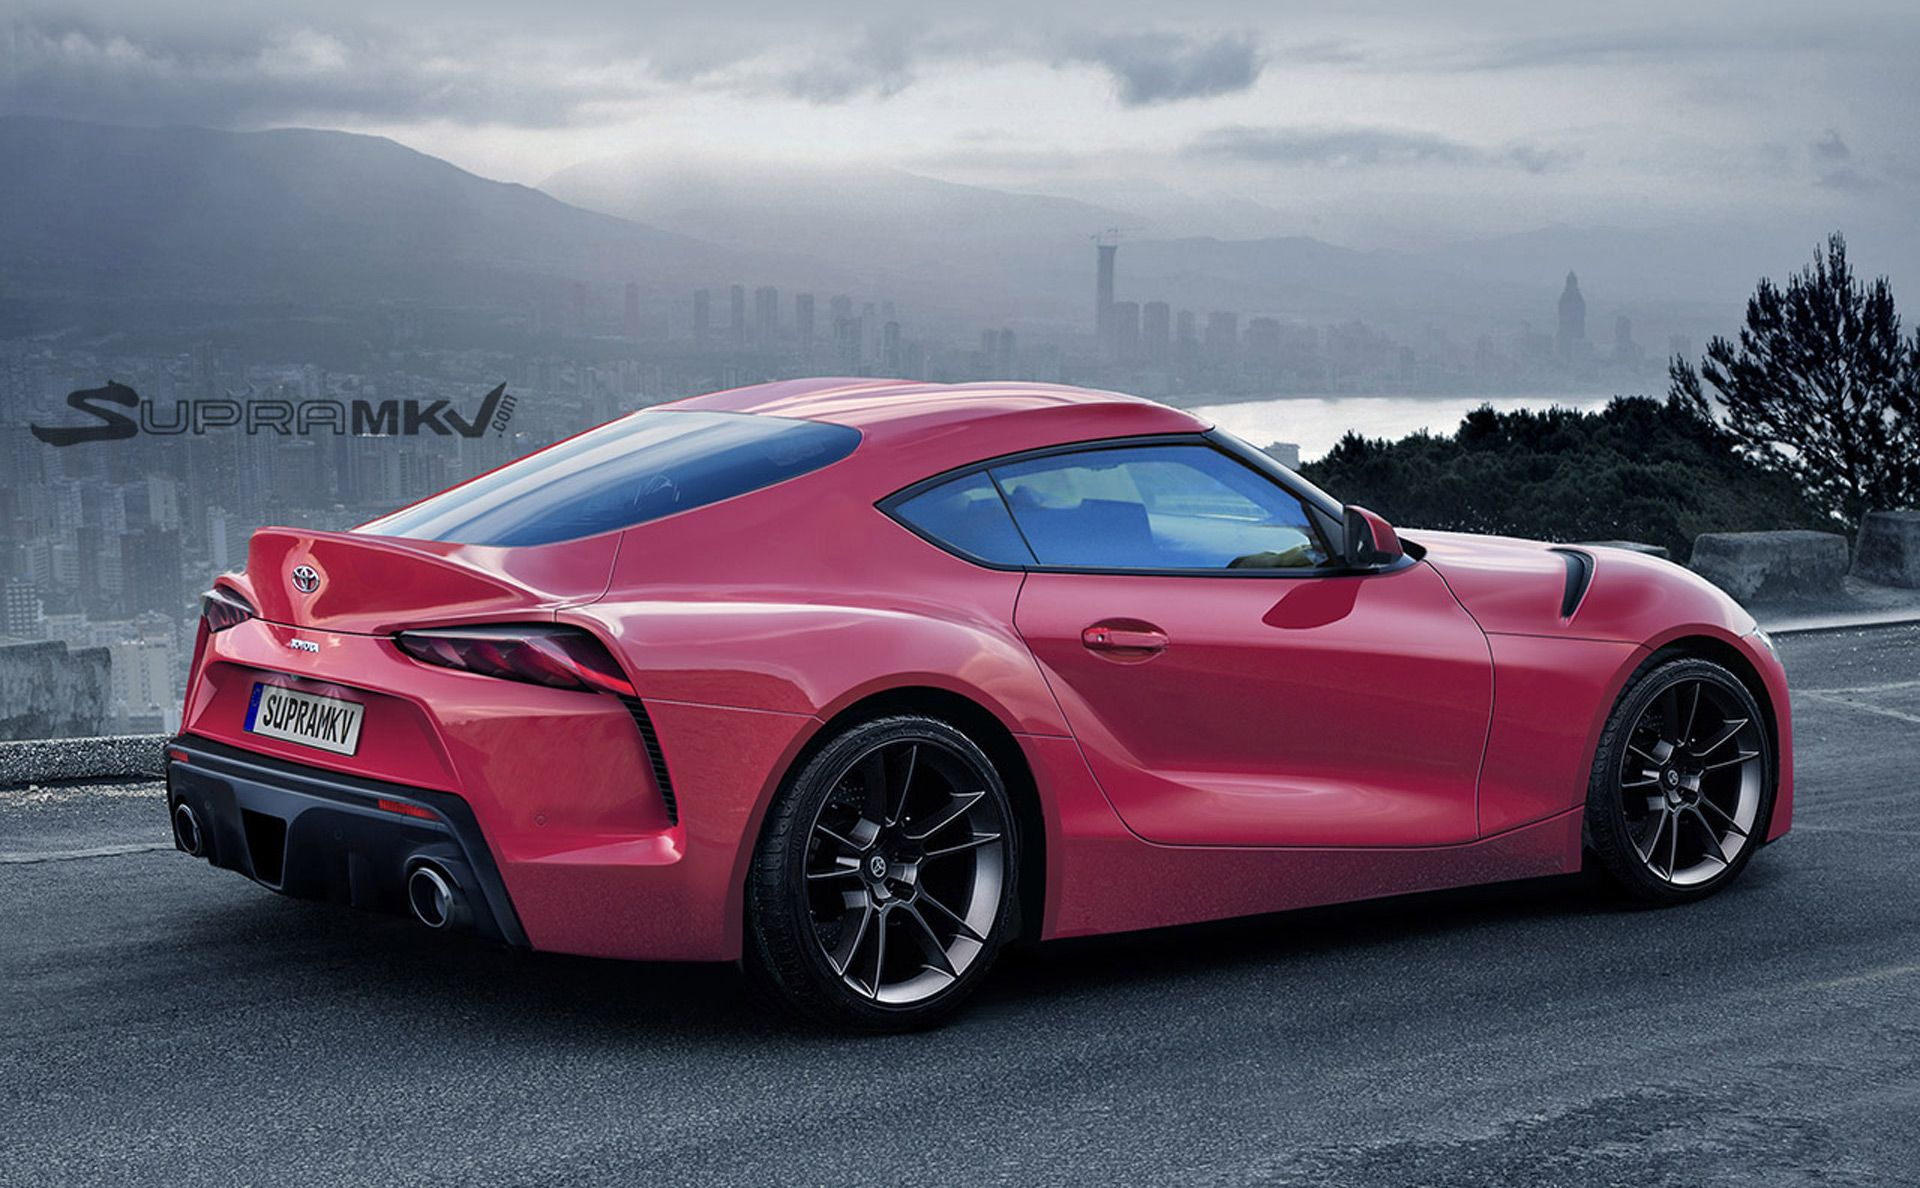 New Toyota Supra And Bmw Z4 To Offer Unique Driving Characteristics Toyota Supra Toyota Supra Turbo New Toyota Supra